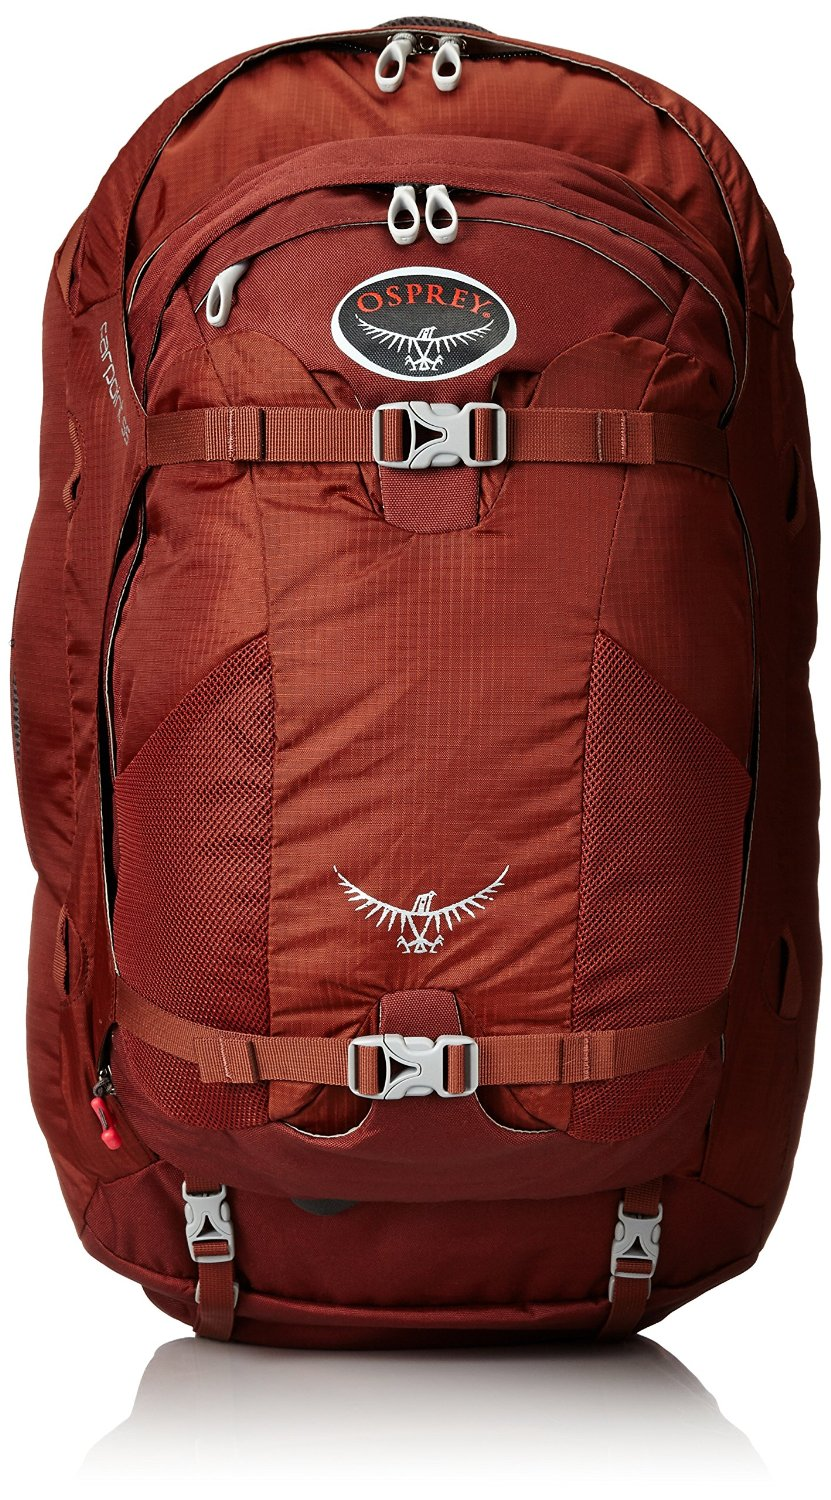 Osprey - Fapoint 55 Travel Backpack (w/ detachable bag connected)